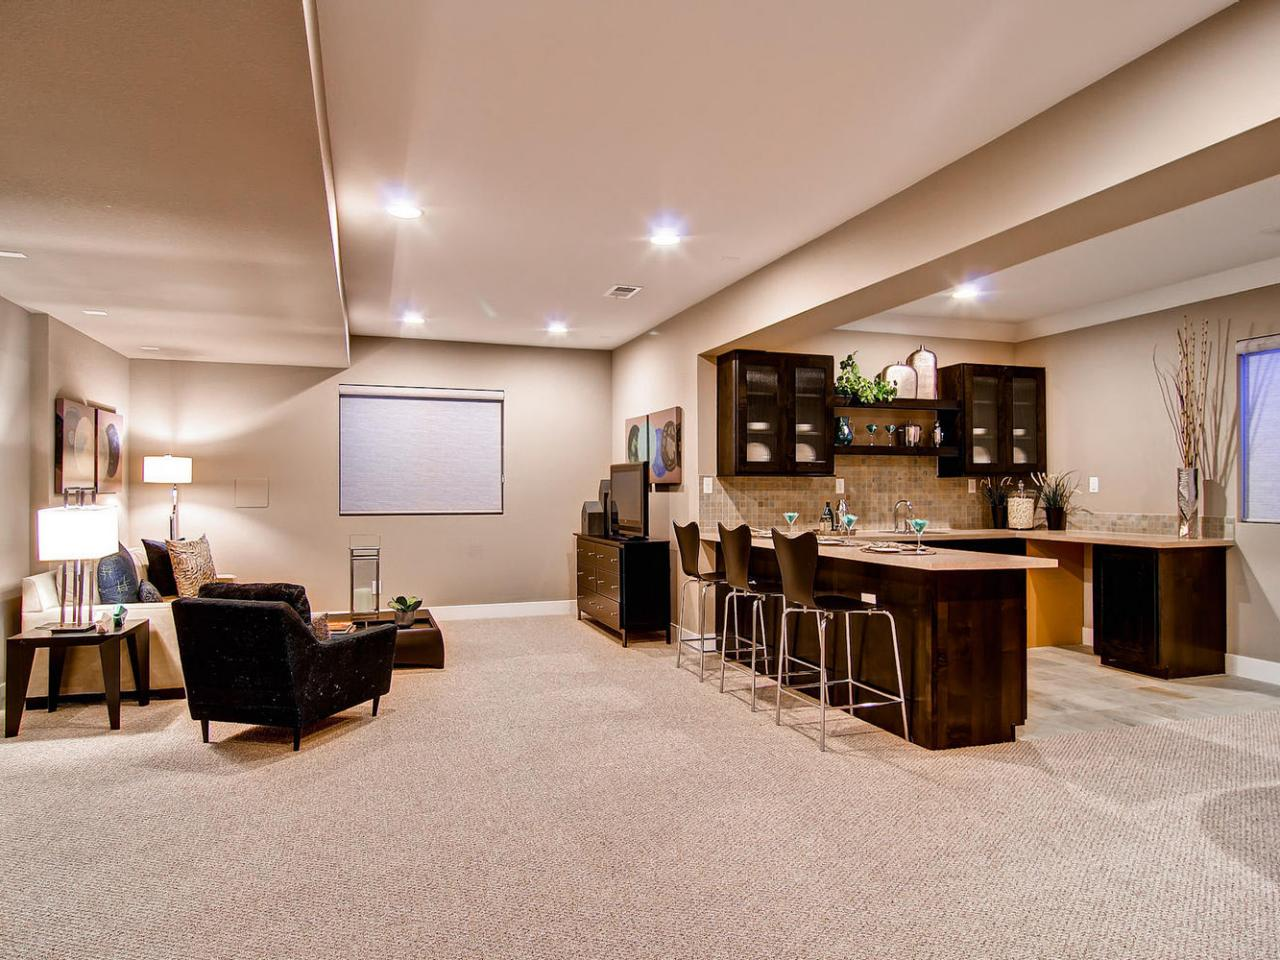 Basement Bar Ideas And Designs: Pictures, Options & Tips